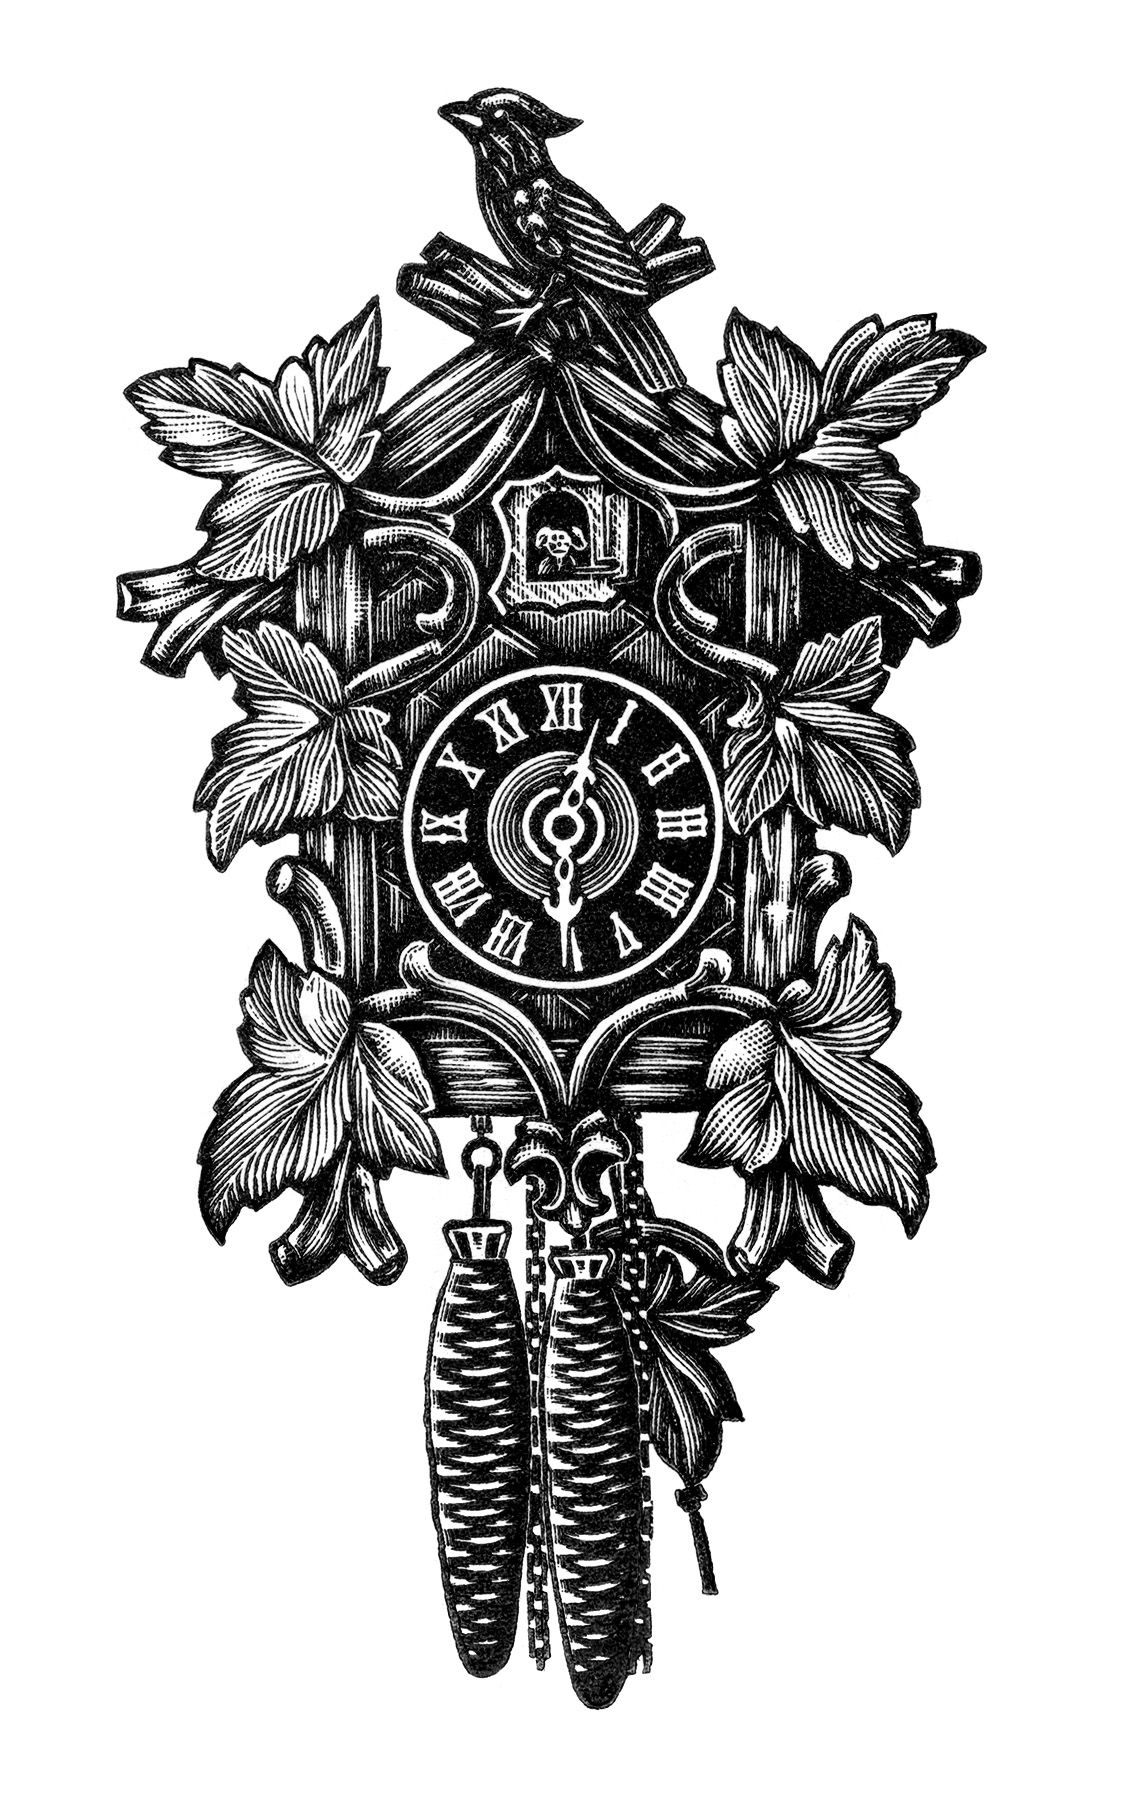 vintage clock clip art, black and white clipart, cuckoo clock ...